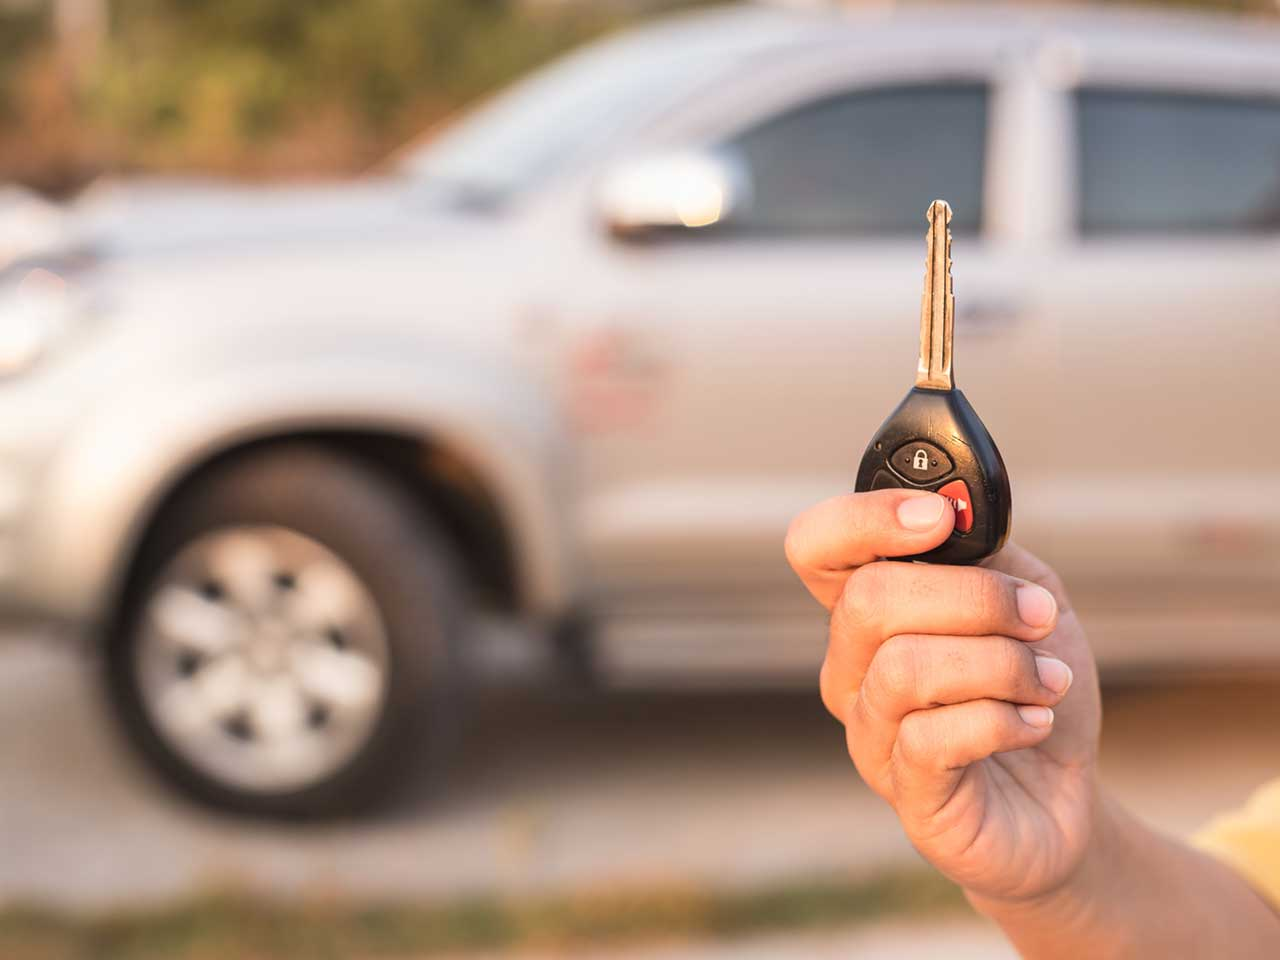 Car key being held